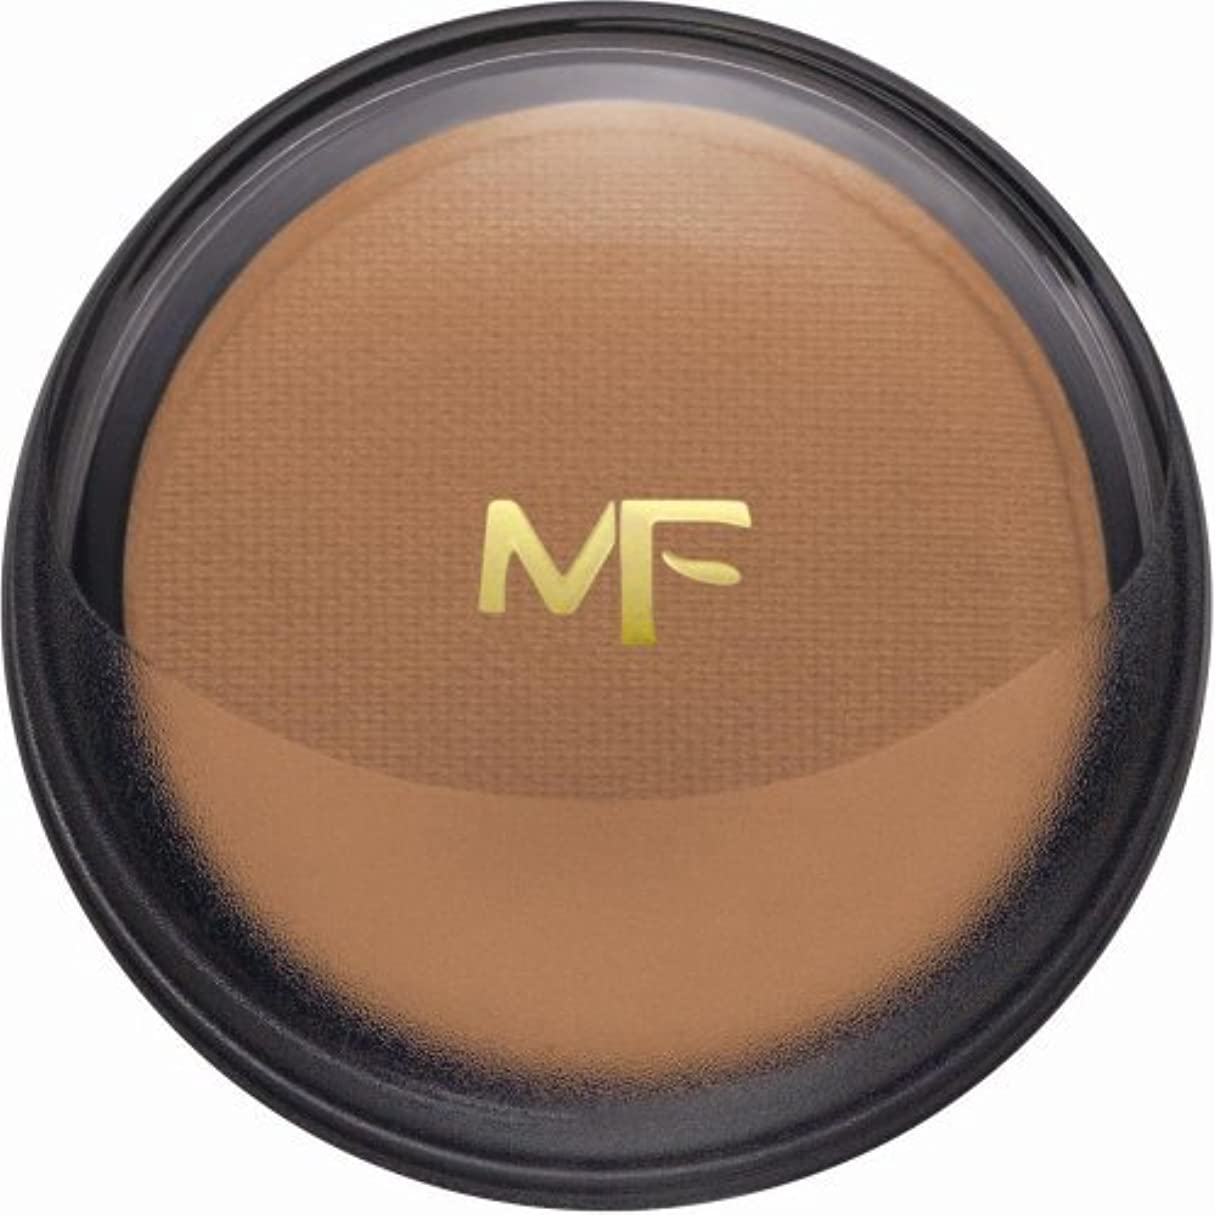 平方合法大胆なMax Factor Earth Spirit Eyeshadow - 108 Inca Bronze by Max Factor